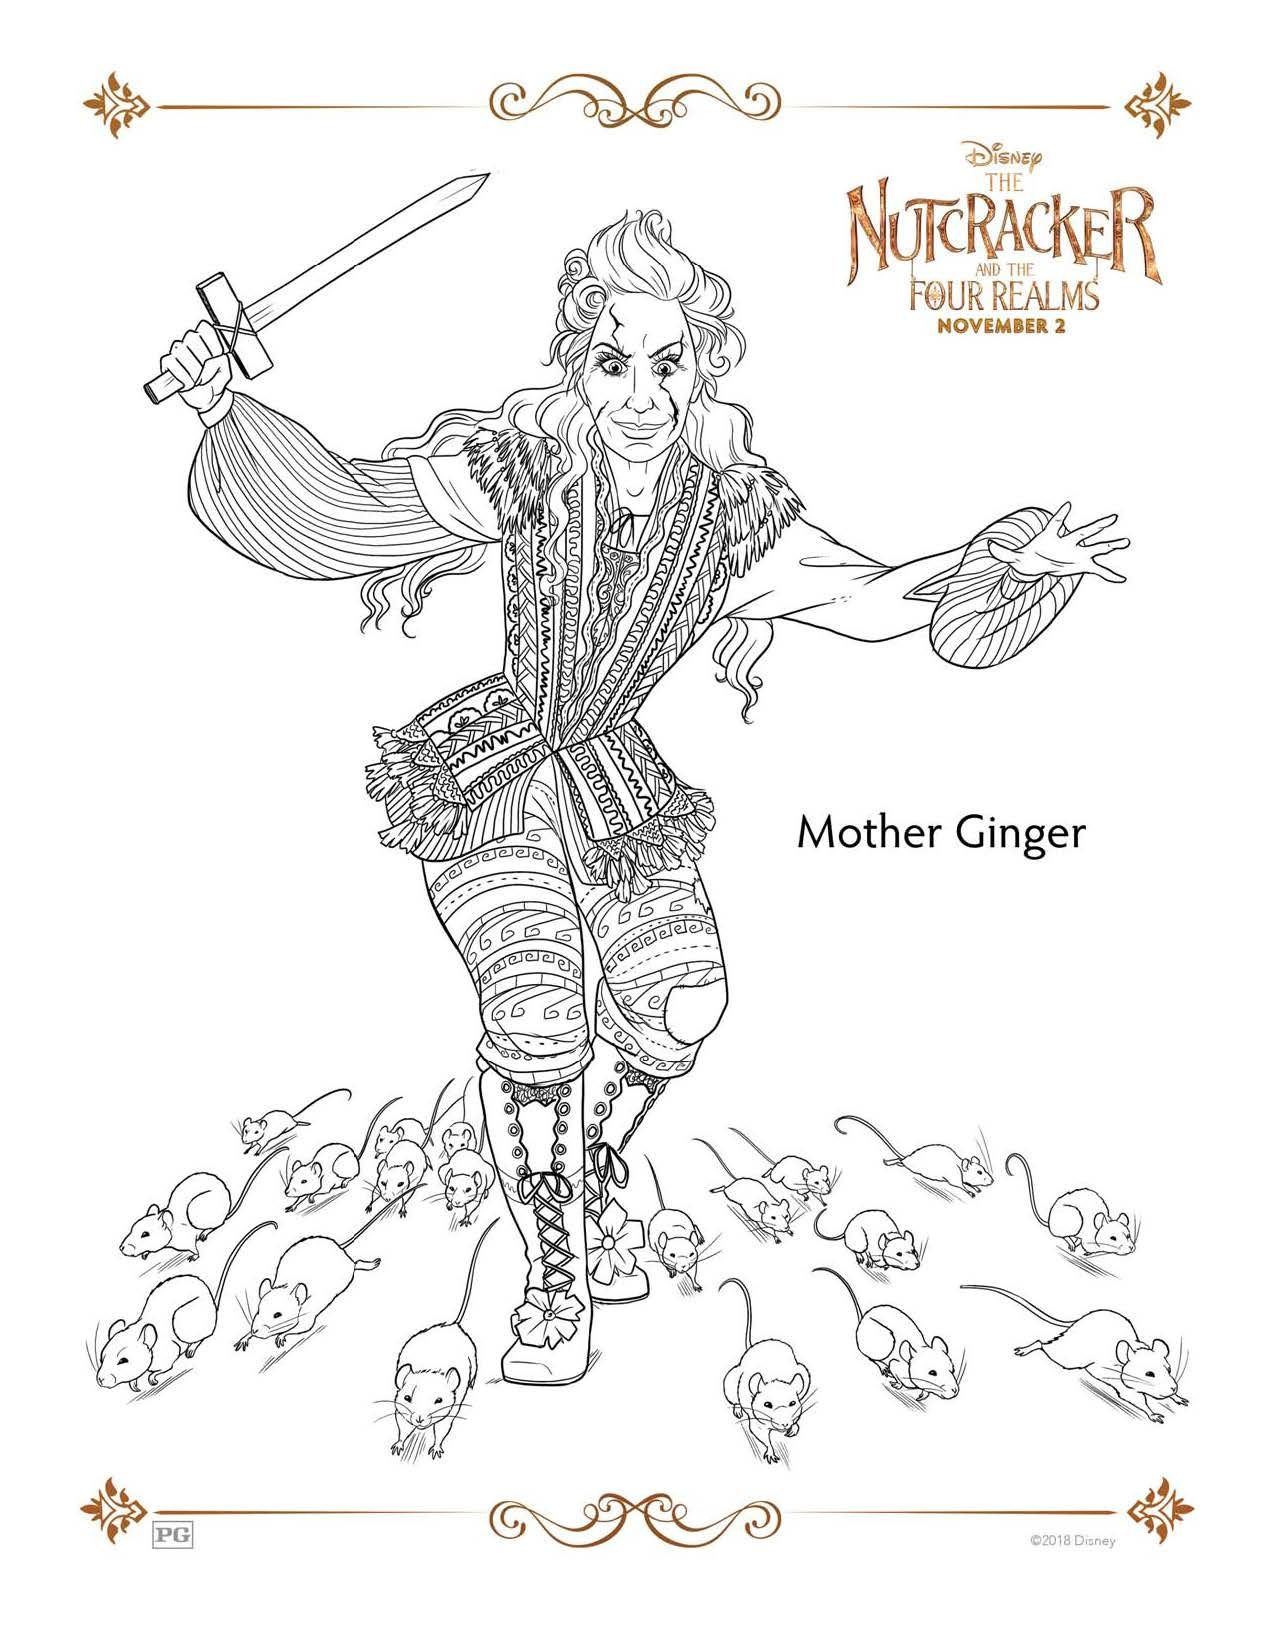 Nutcracker coloring page disneyus the nutcracker and the four